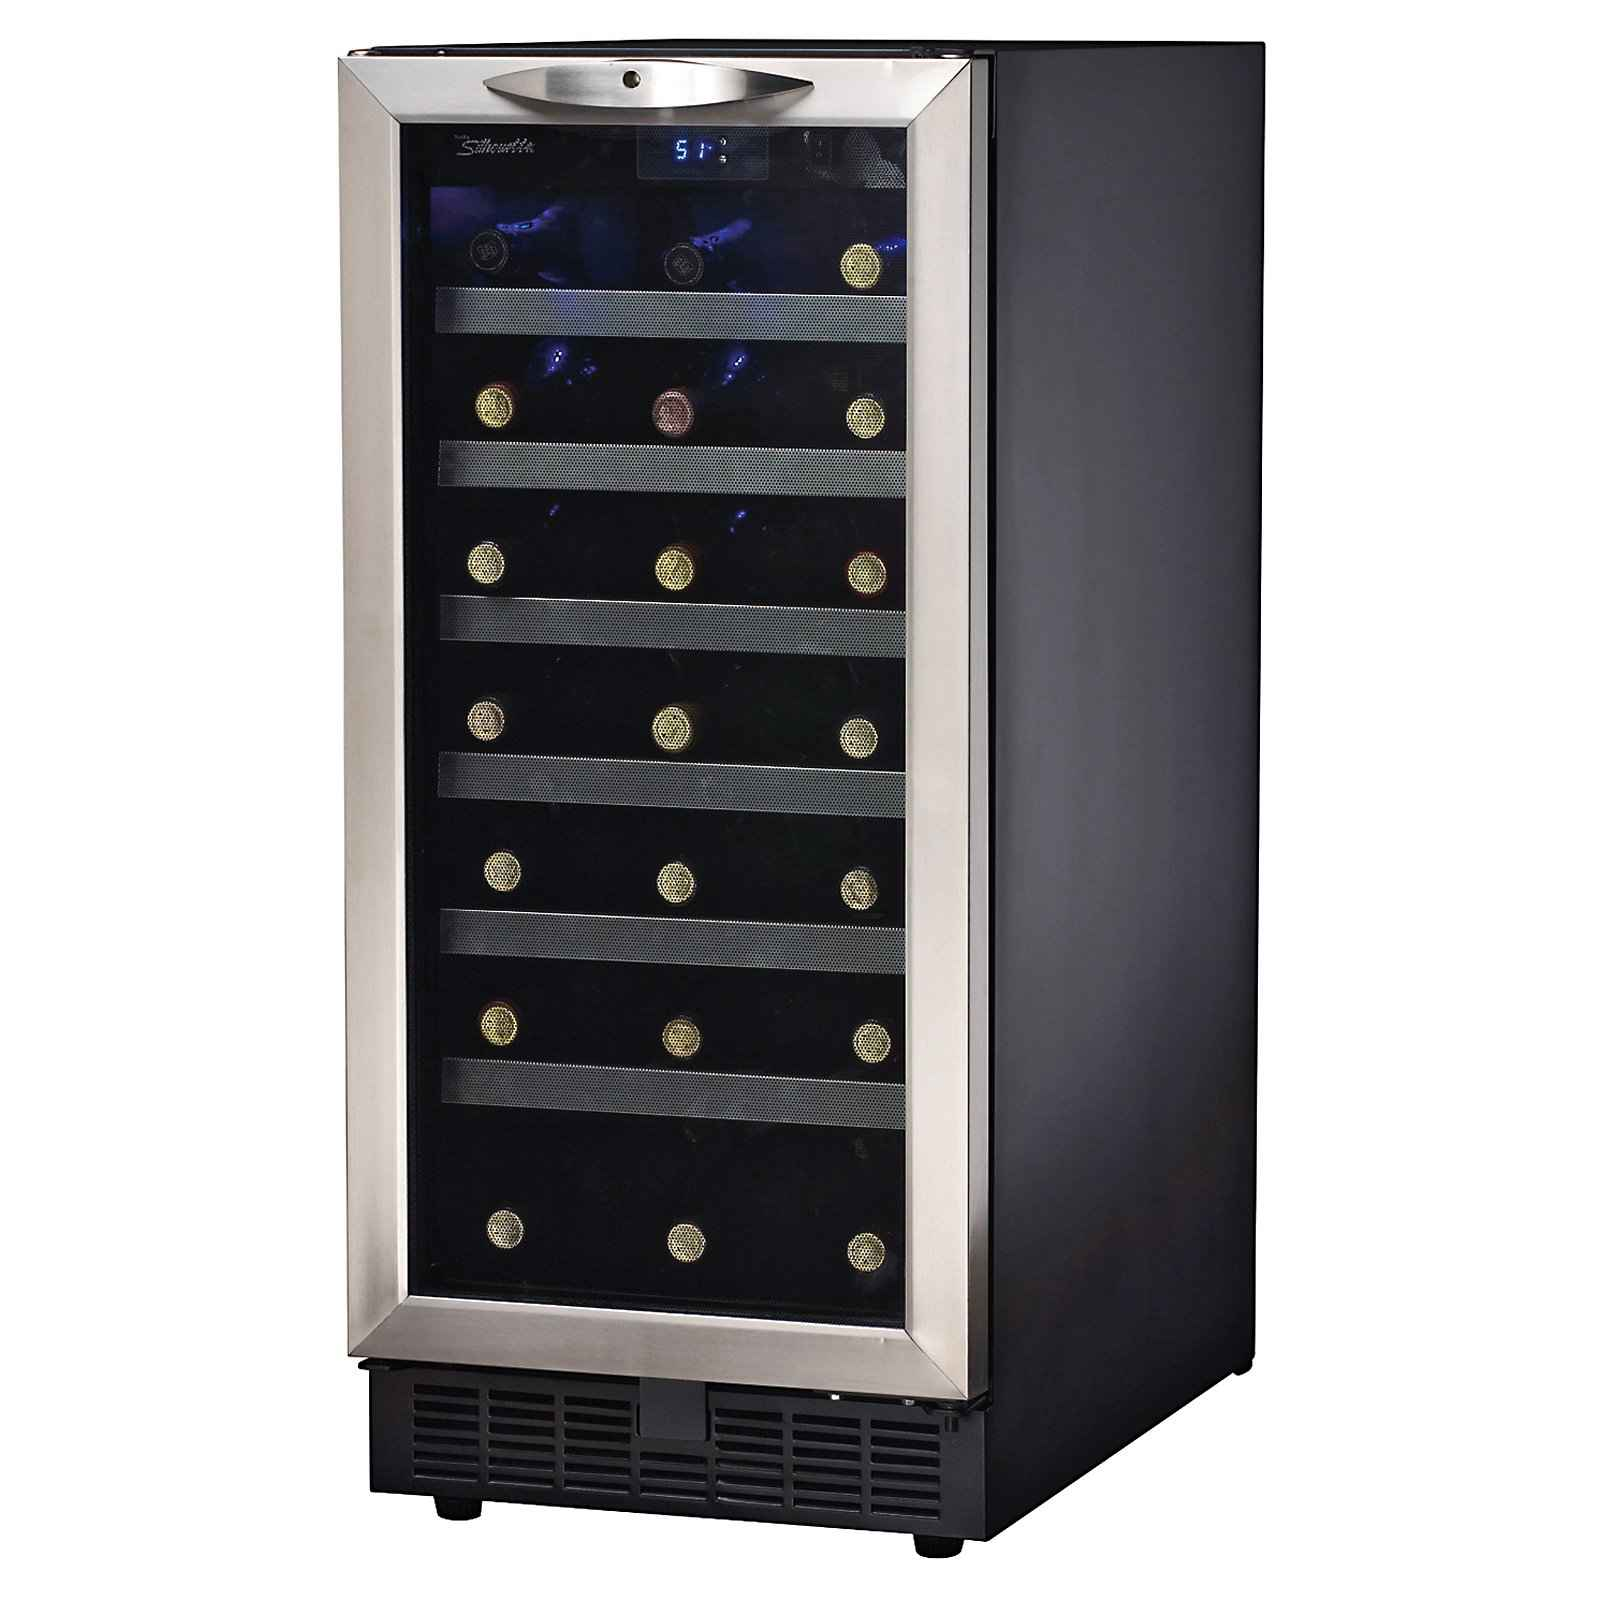 wine fridge: